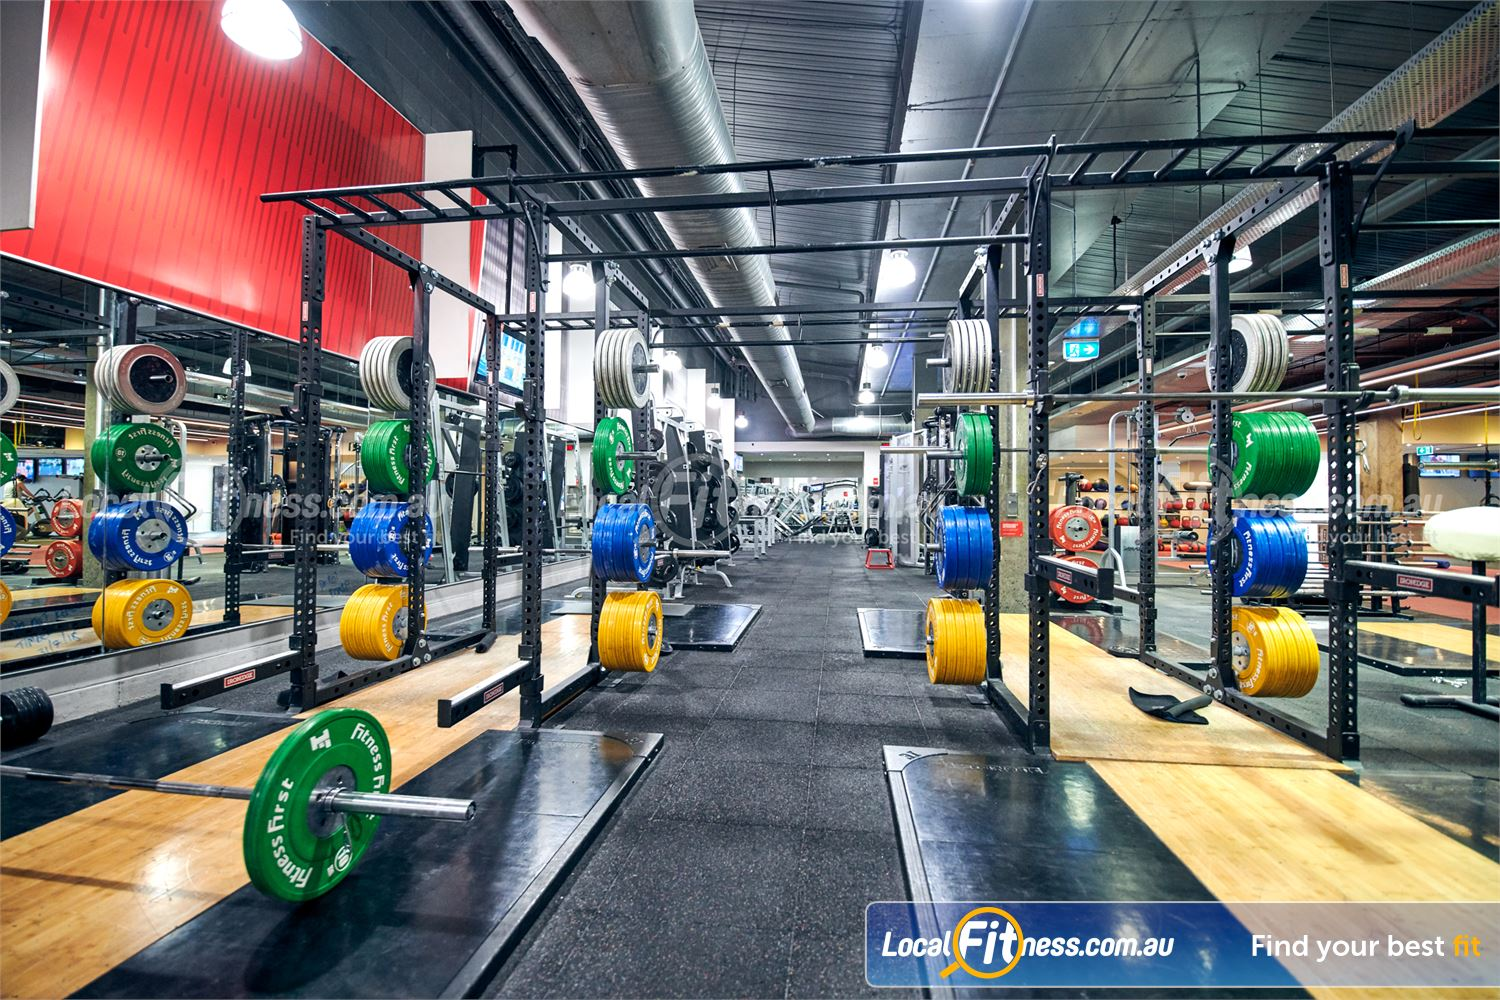 Fitness First Victoria Gardens Richmond Our Richmond gym has 6 Olympic lifting platforms.